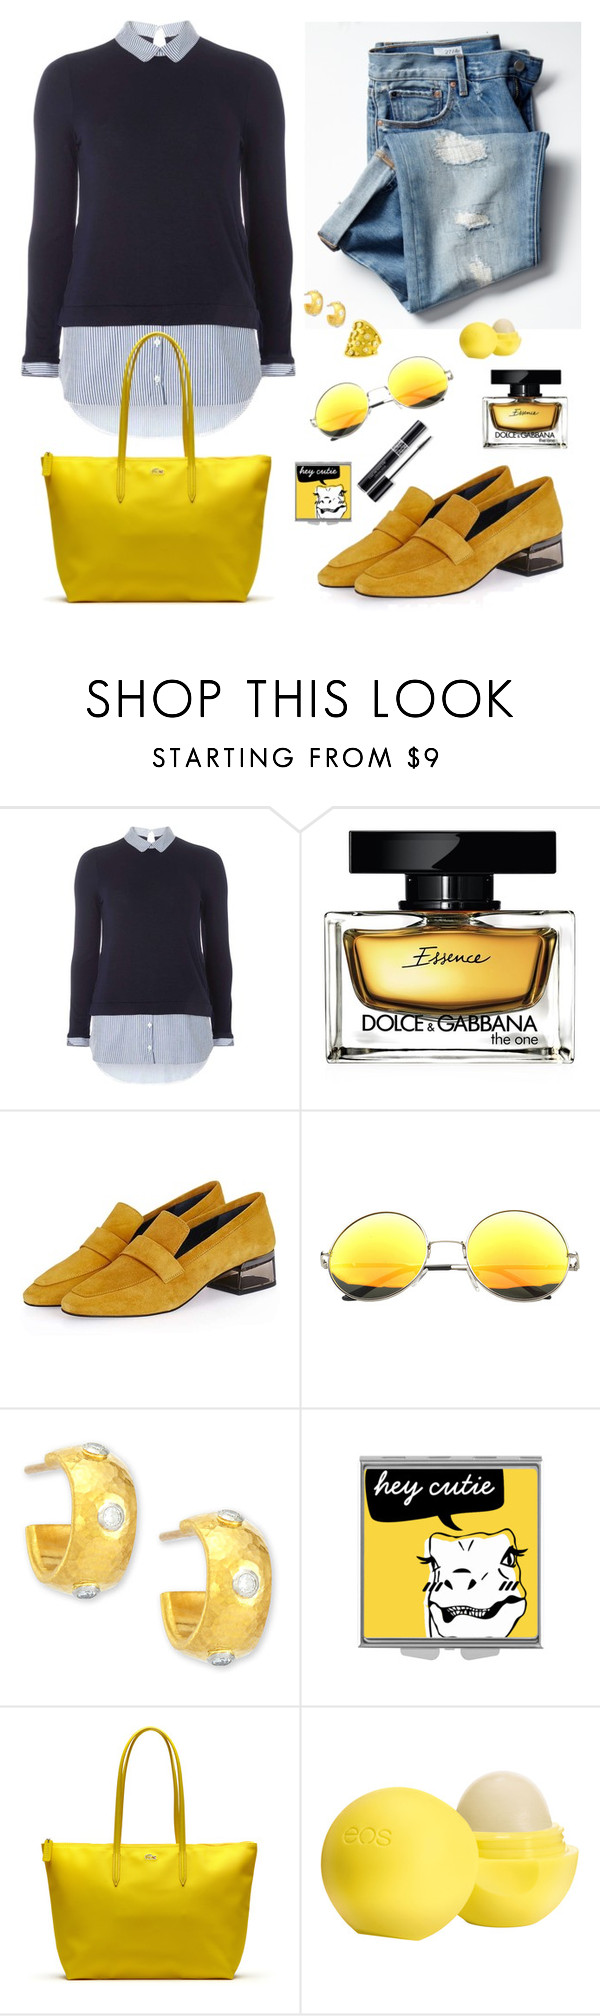 """""""Sin título #1658"""" by mussedechocolate ❤ liked on Polyvore featuring Dorothy Perkins, Gap, Dolce&Gabbana, Topshop, Gurhan, Lacoste, Christian Dior and Eos"""